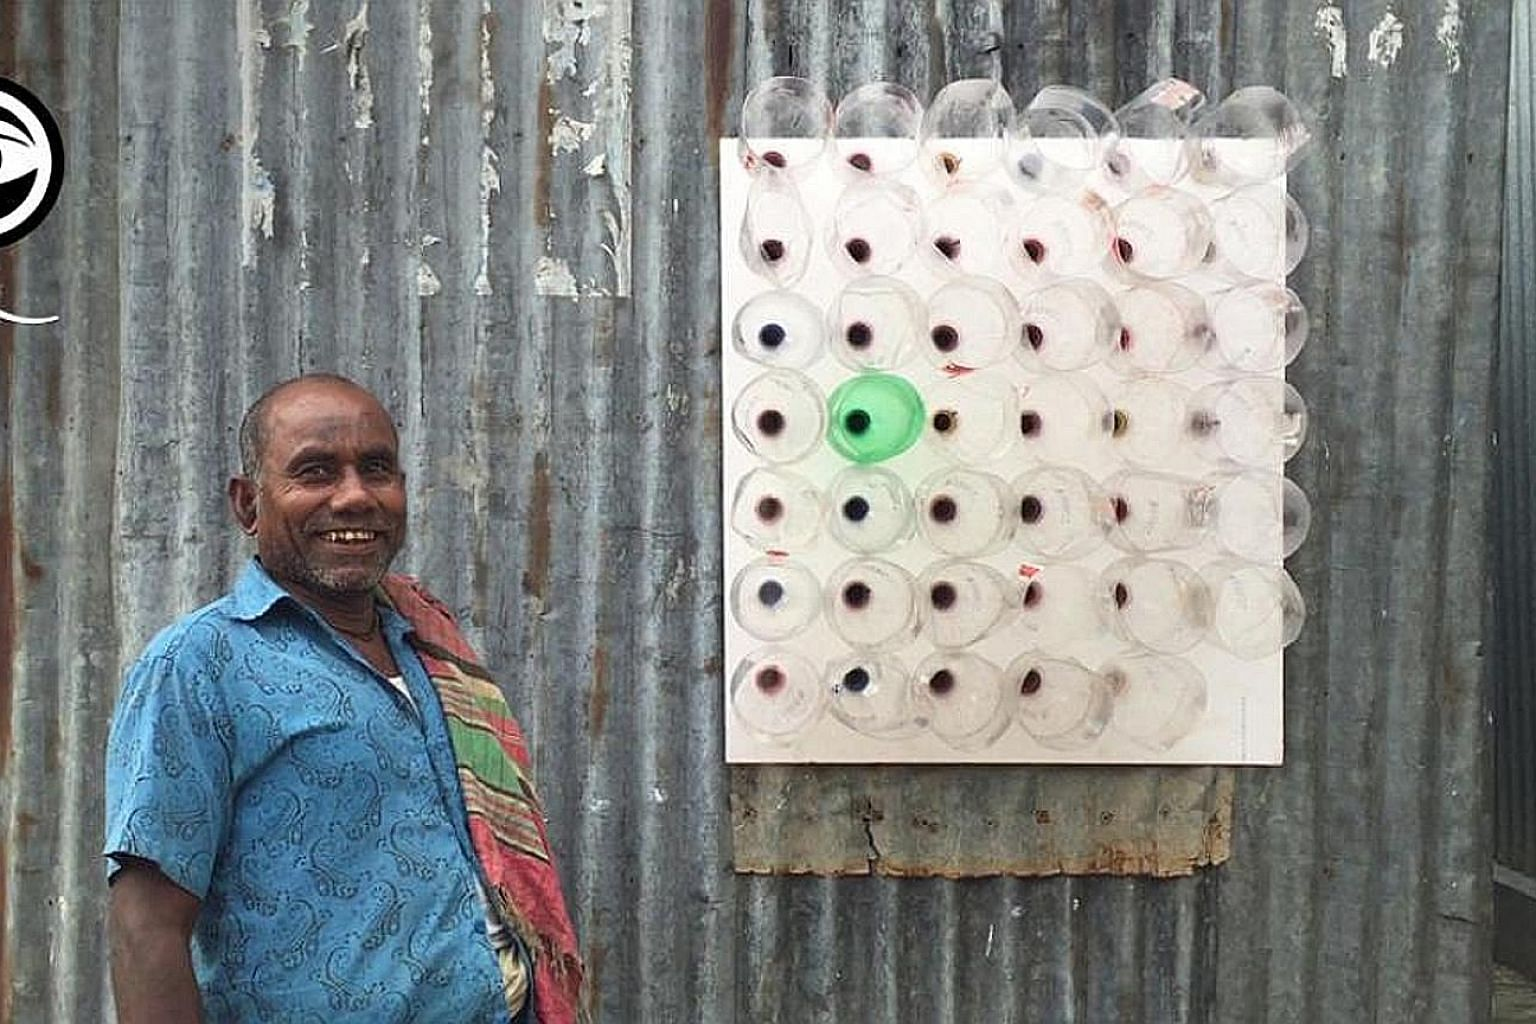 An Eco-Cooler - made of cut plastic bottles mounted on a board with the cut ends facing outside - installed in a window. Hot air entering the bottles is compressed in the bottlenecks, which cools it before it enters the house.